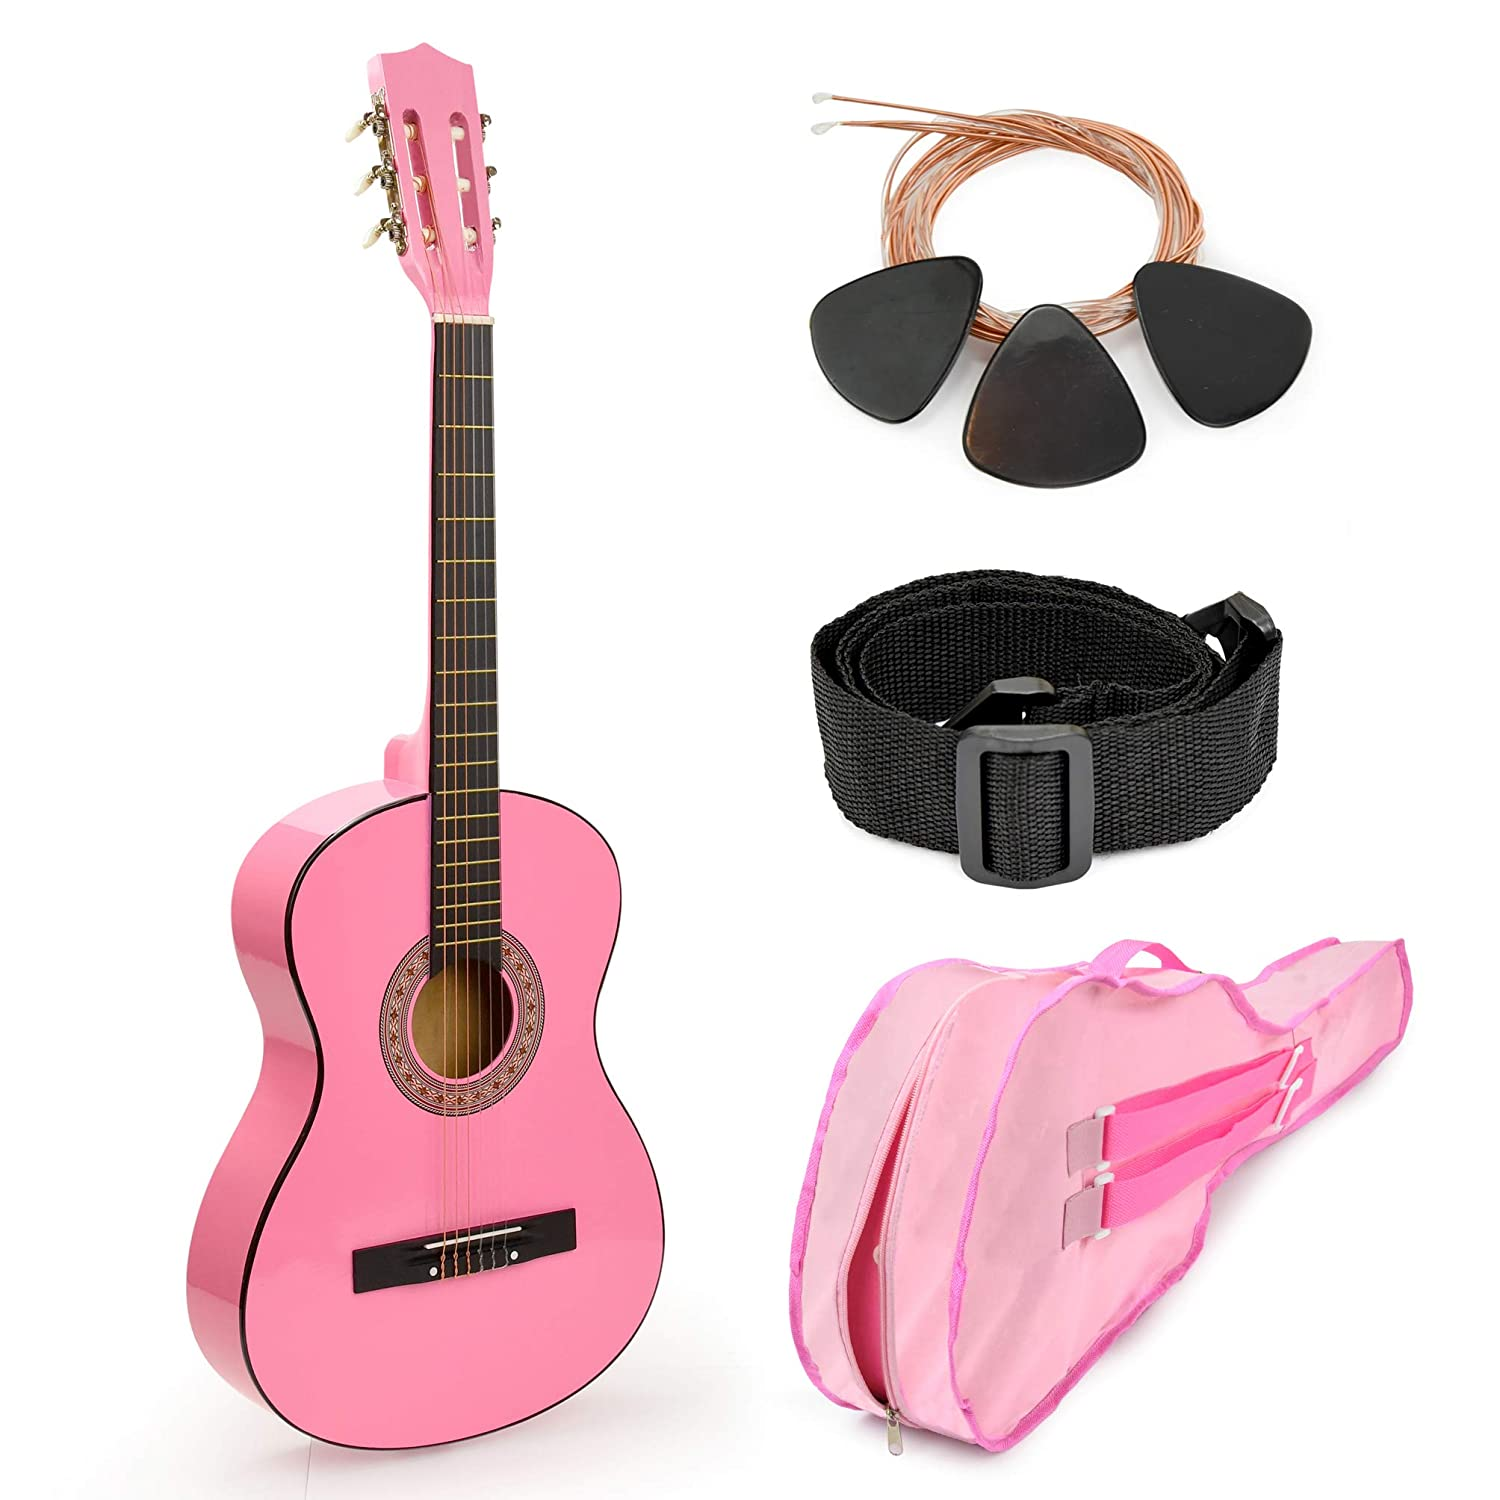 Pink Wood Guitar with Case and Accessories Great Gift for Kids/Girls / Beginners (38